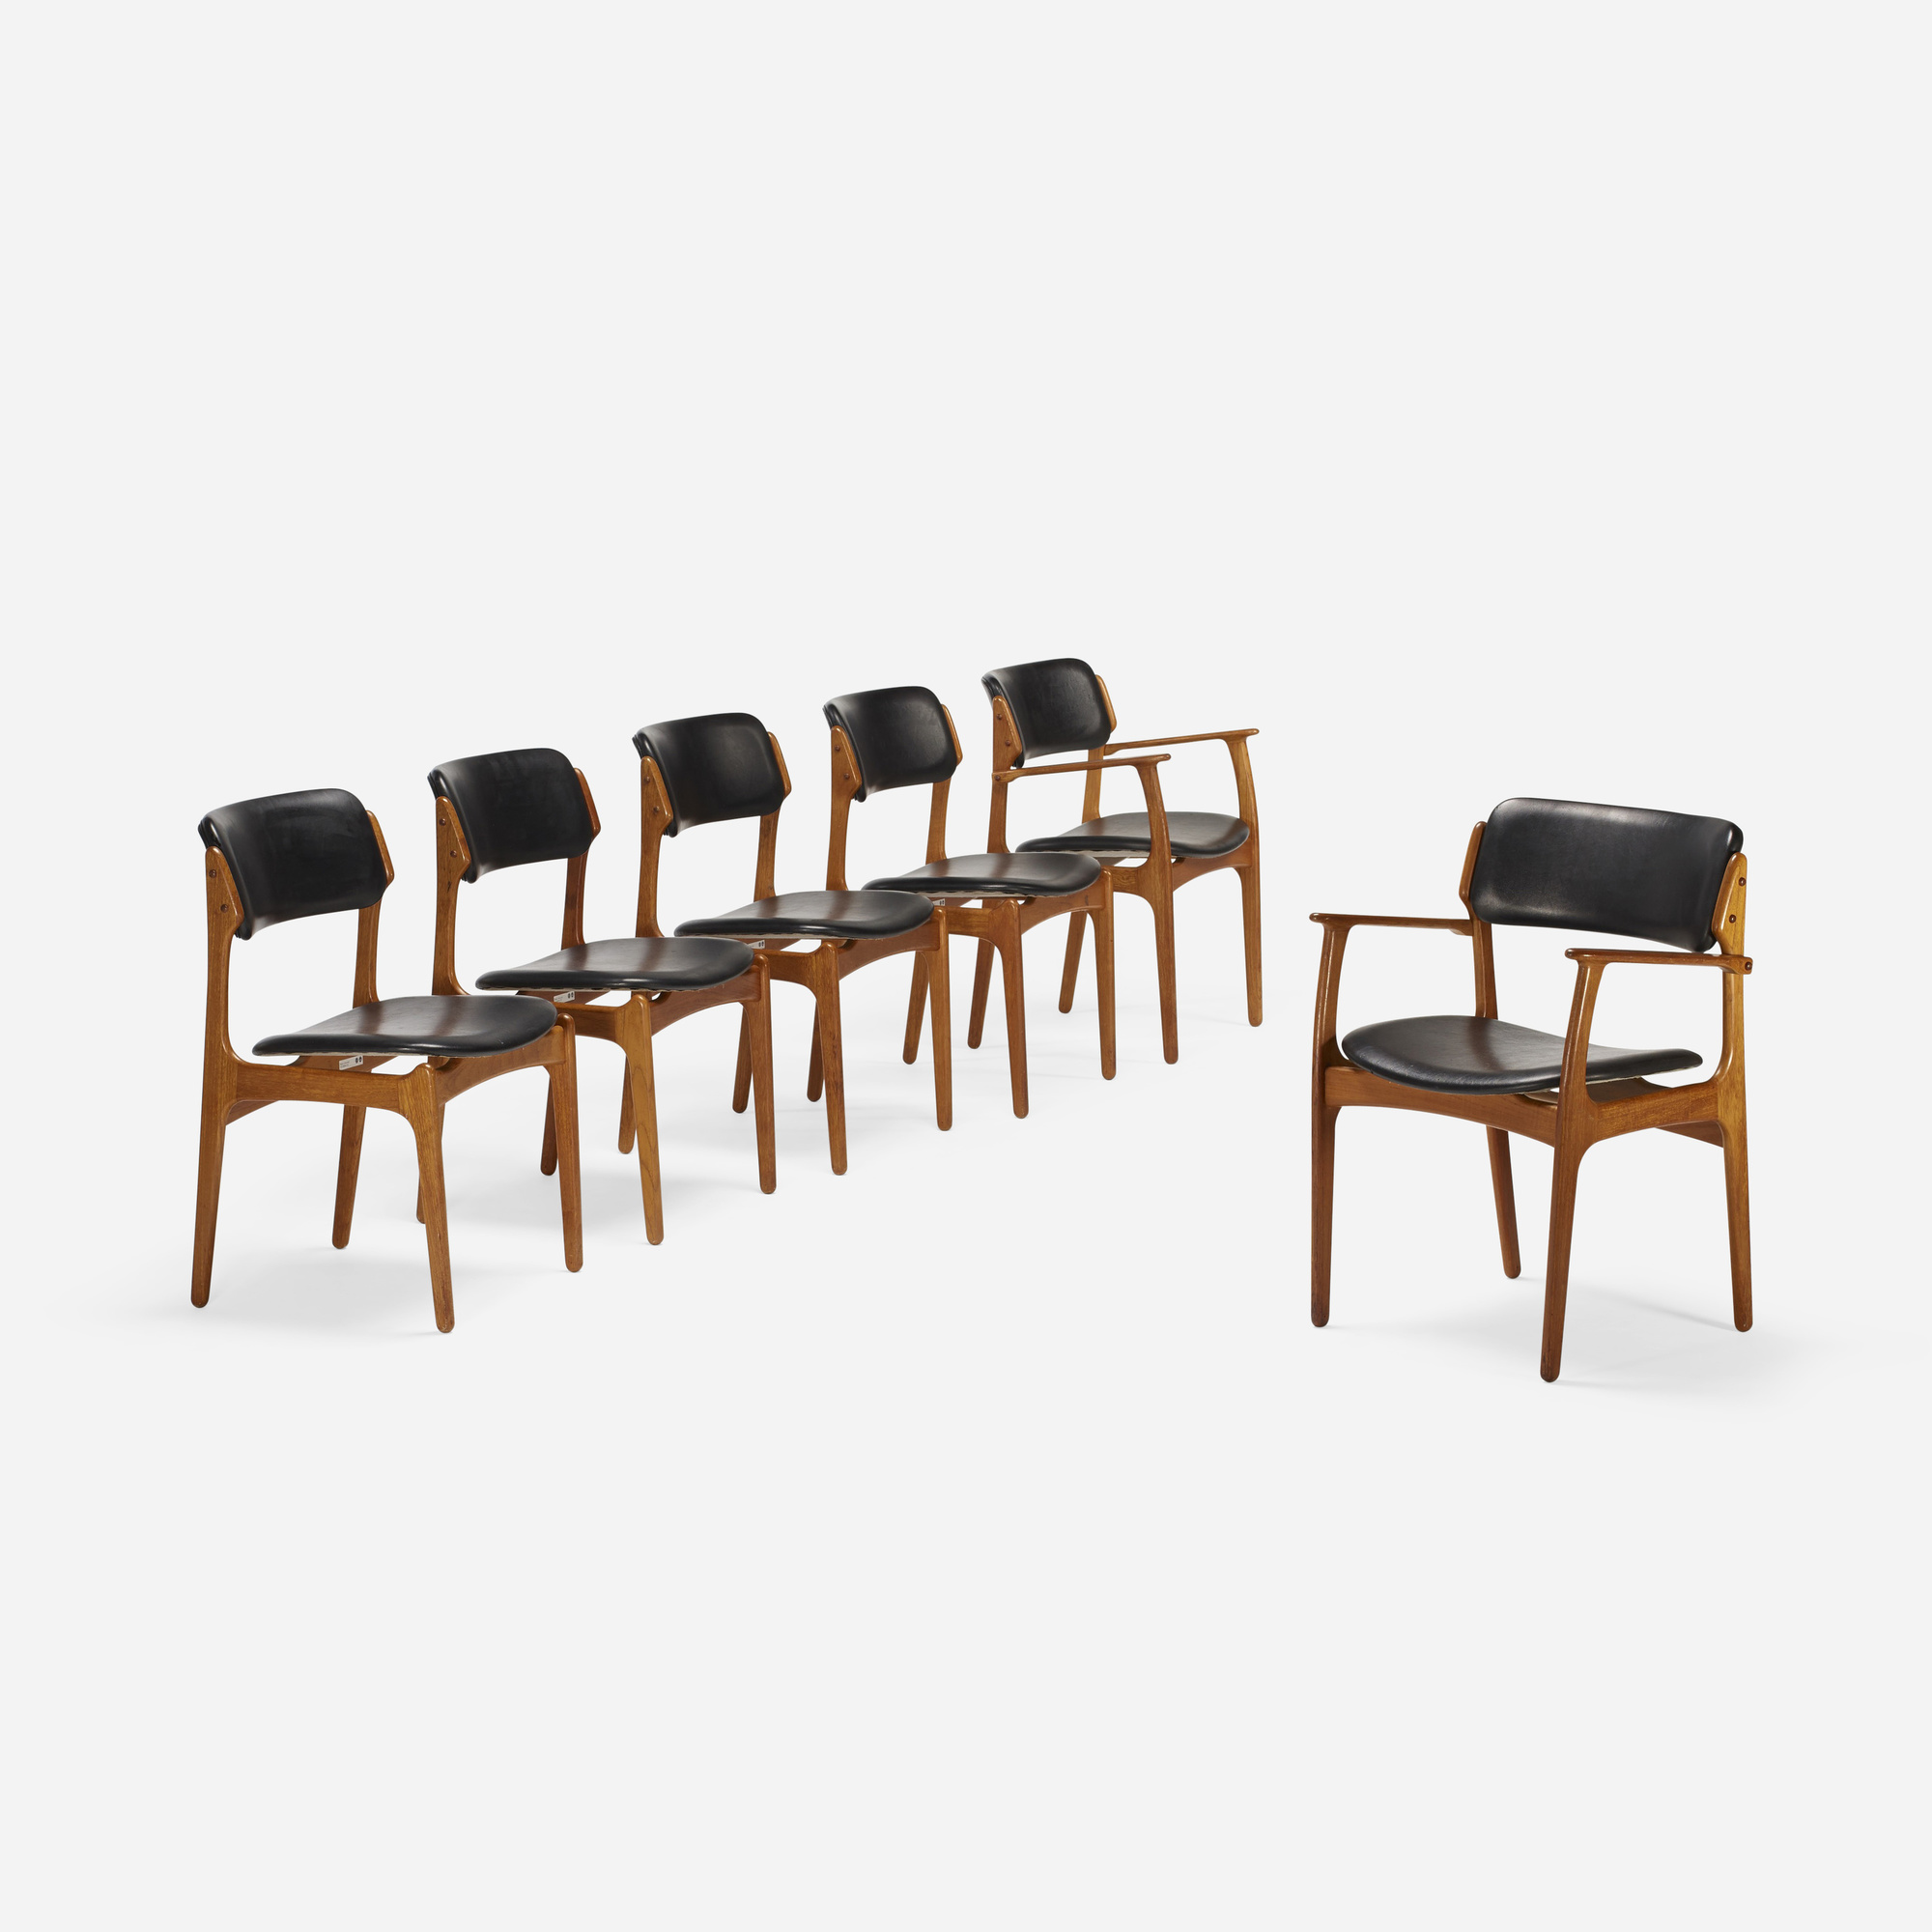 187 ERIK BUCK dining chairs model OD 49 set of six Mass